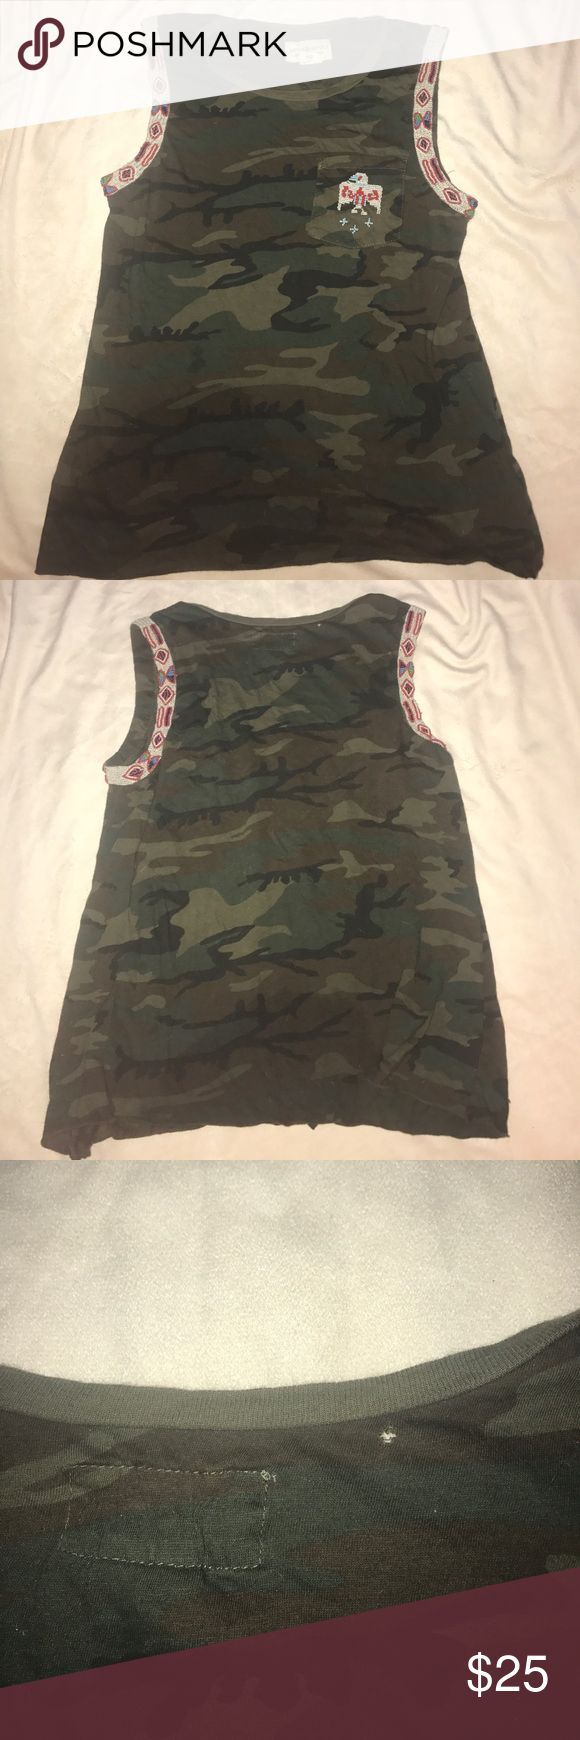 XS denim and supply camouflage tank top Extra small sequin and a camouflage Denamen supply by Ralph Lauren tank top gently used Denim & Supply Ralph Lauren Tops Tank Tops